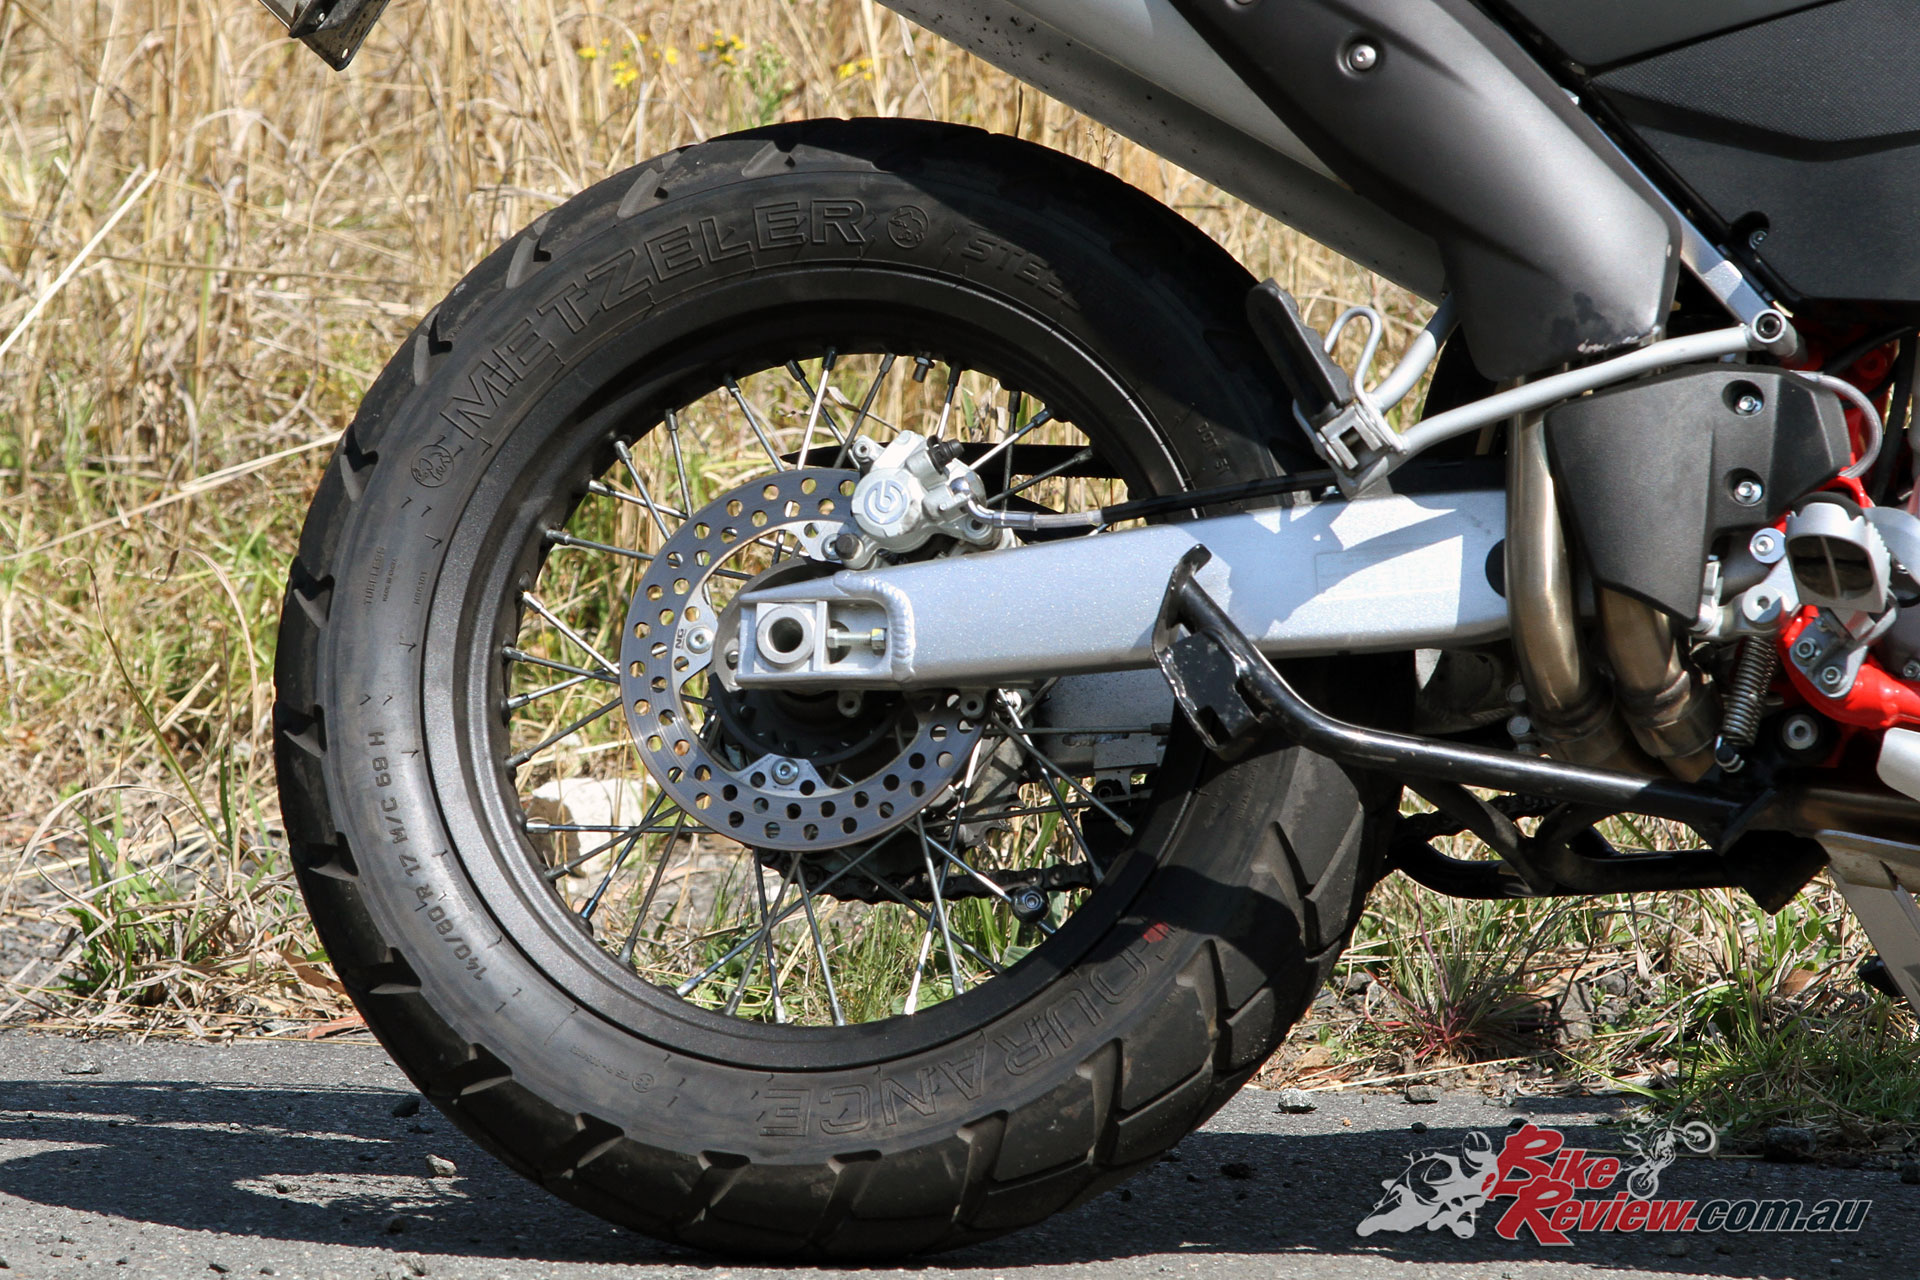 The rear brake carries the most bite of the system and is a Brembo offering like the front.